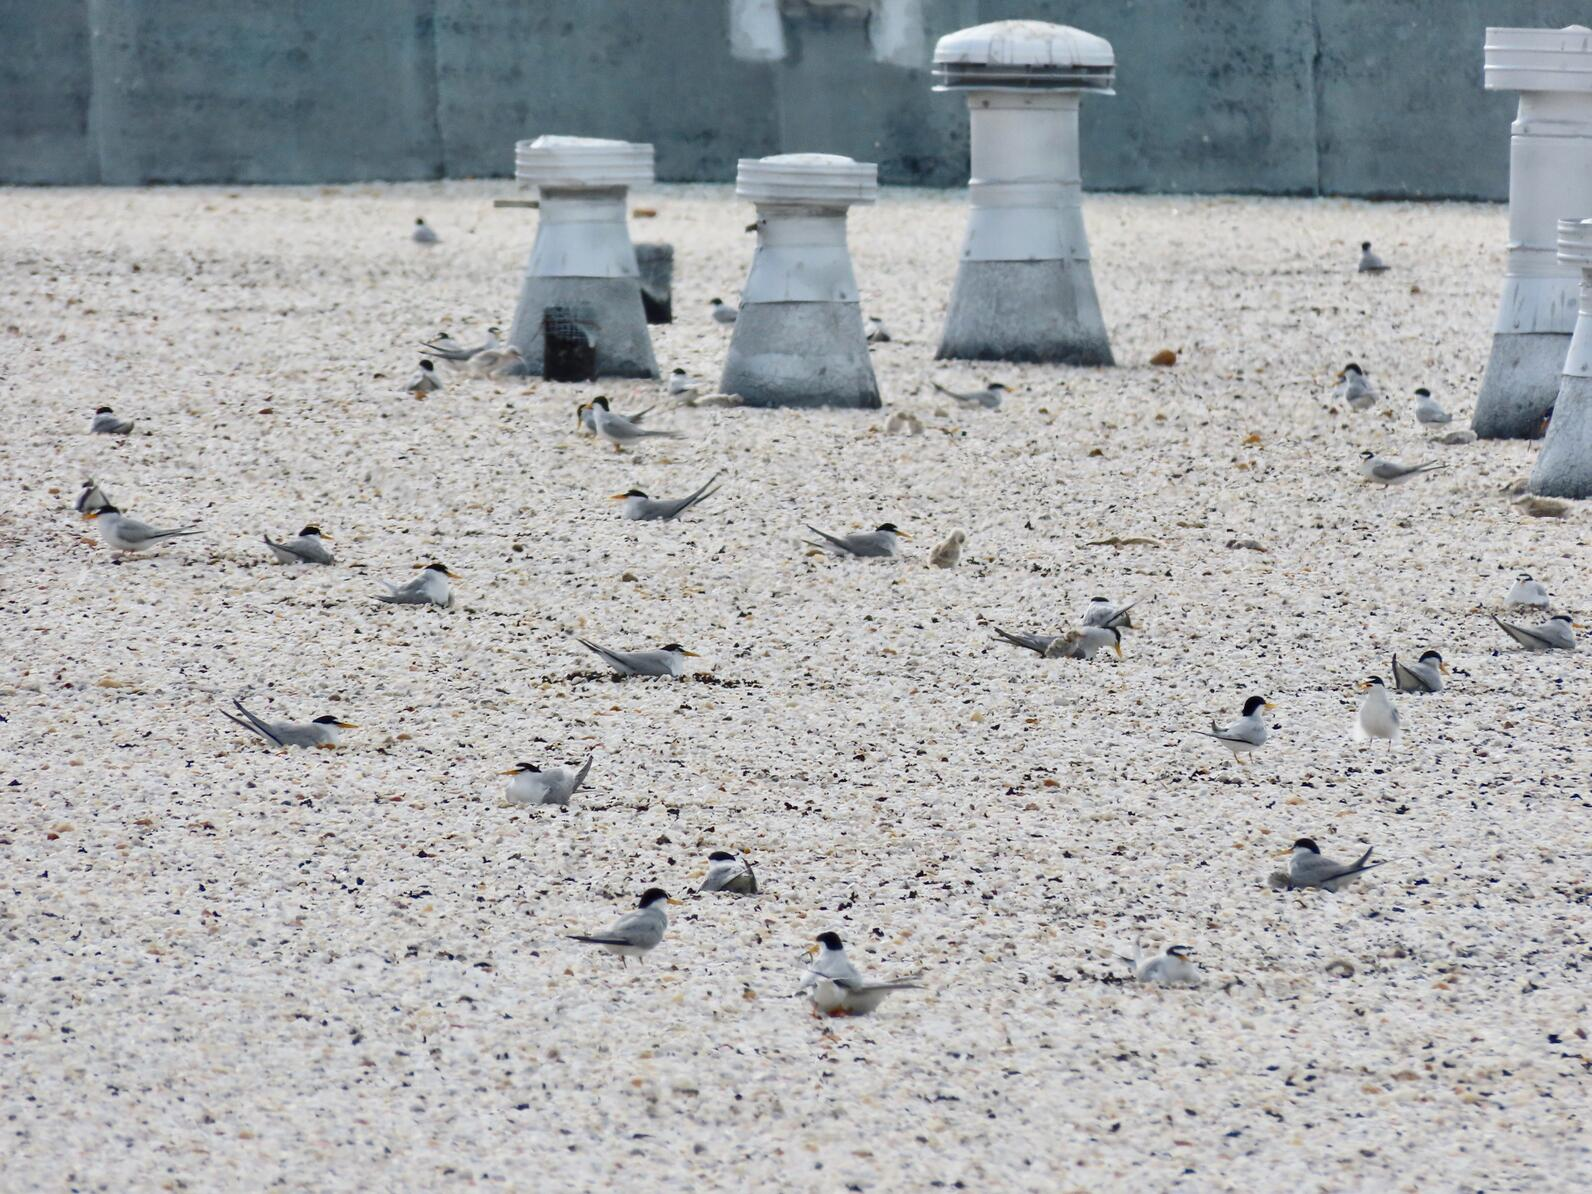 Rooftop colony of Least Terns.